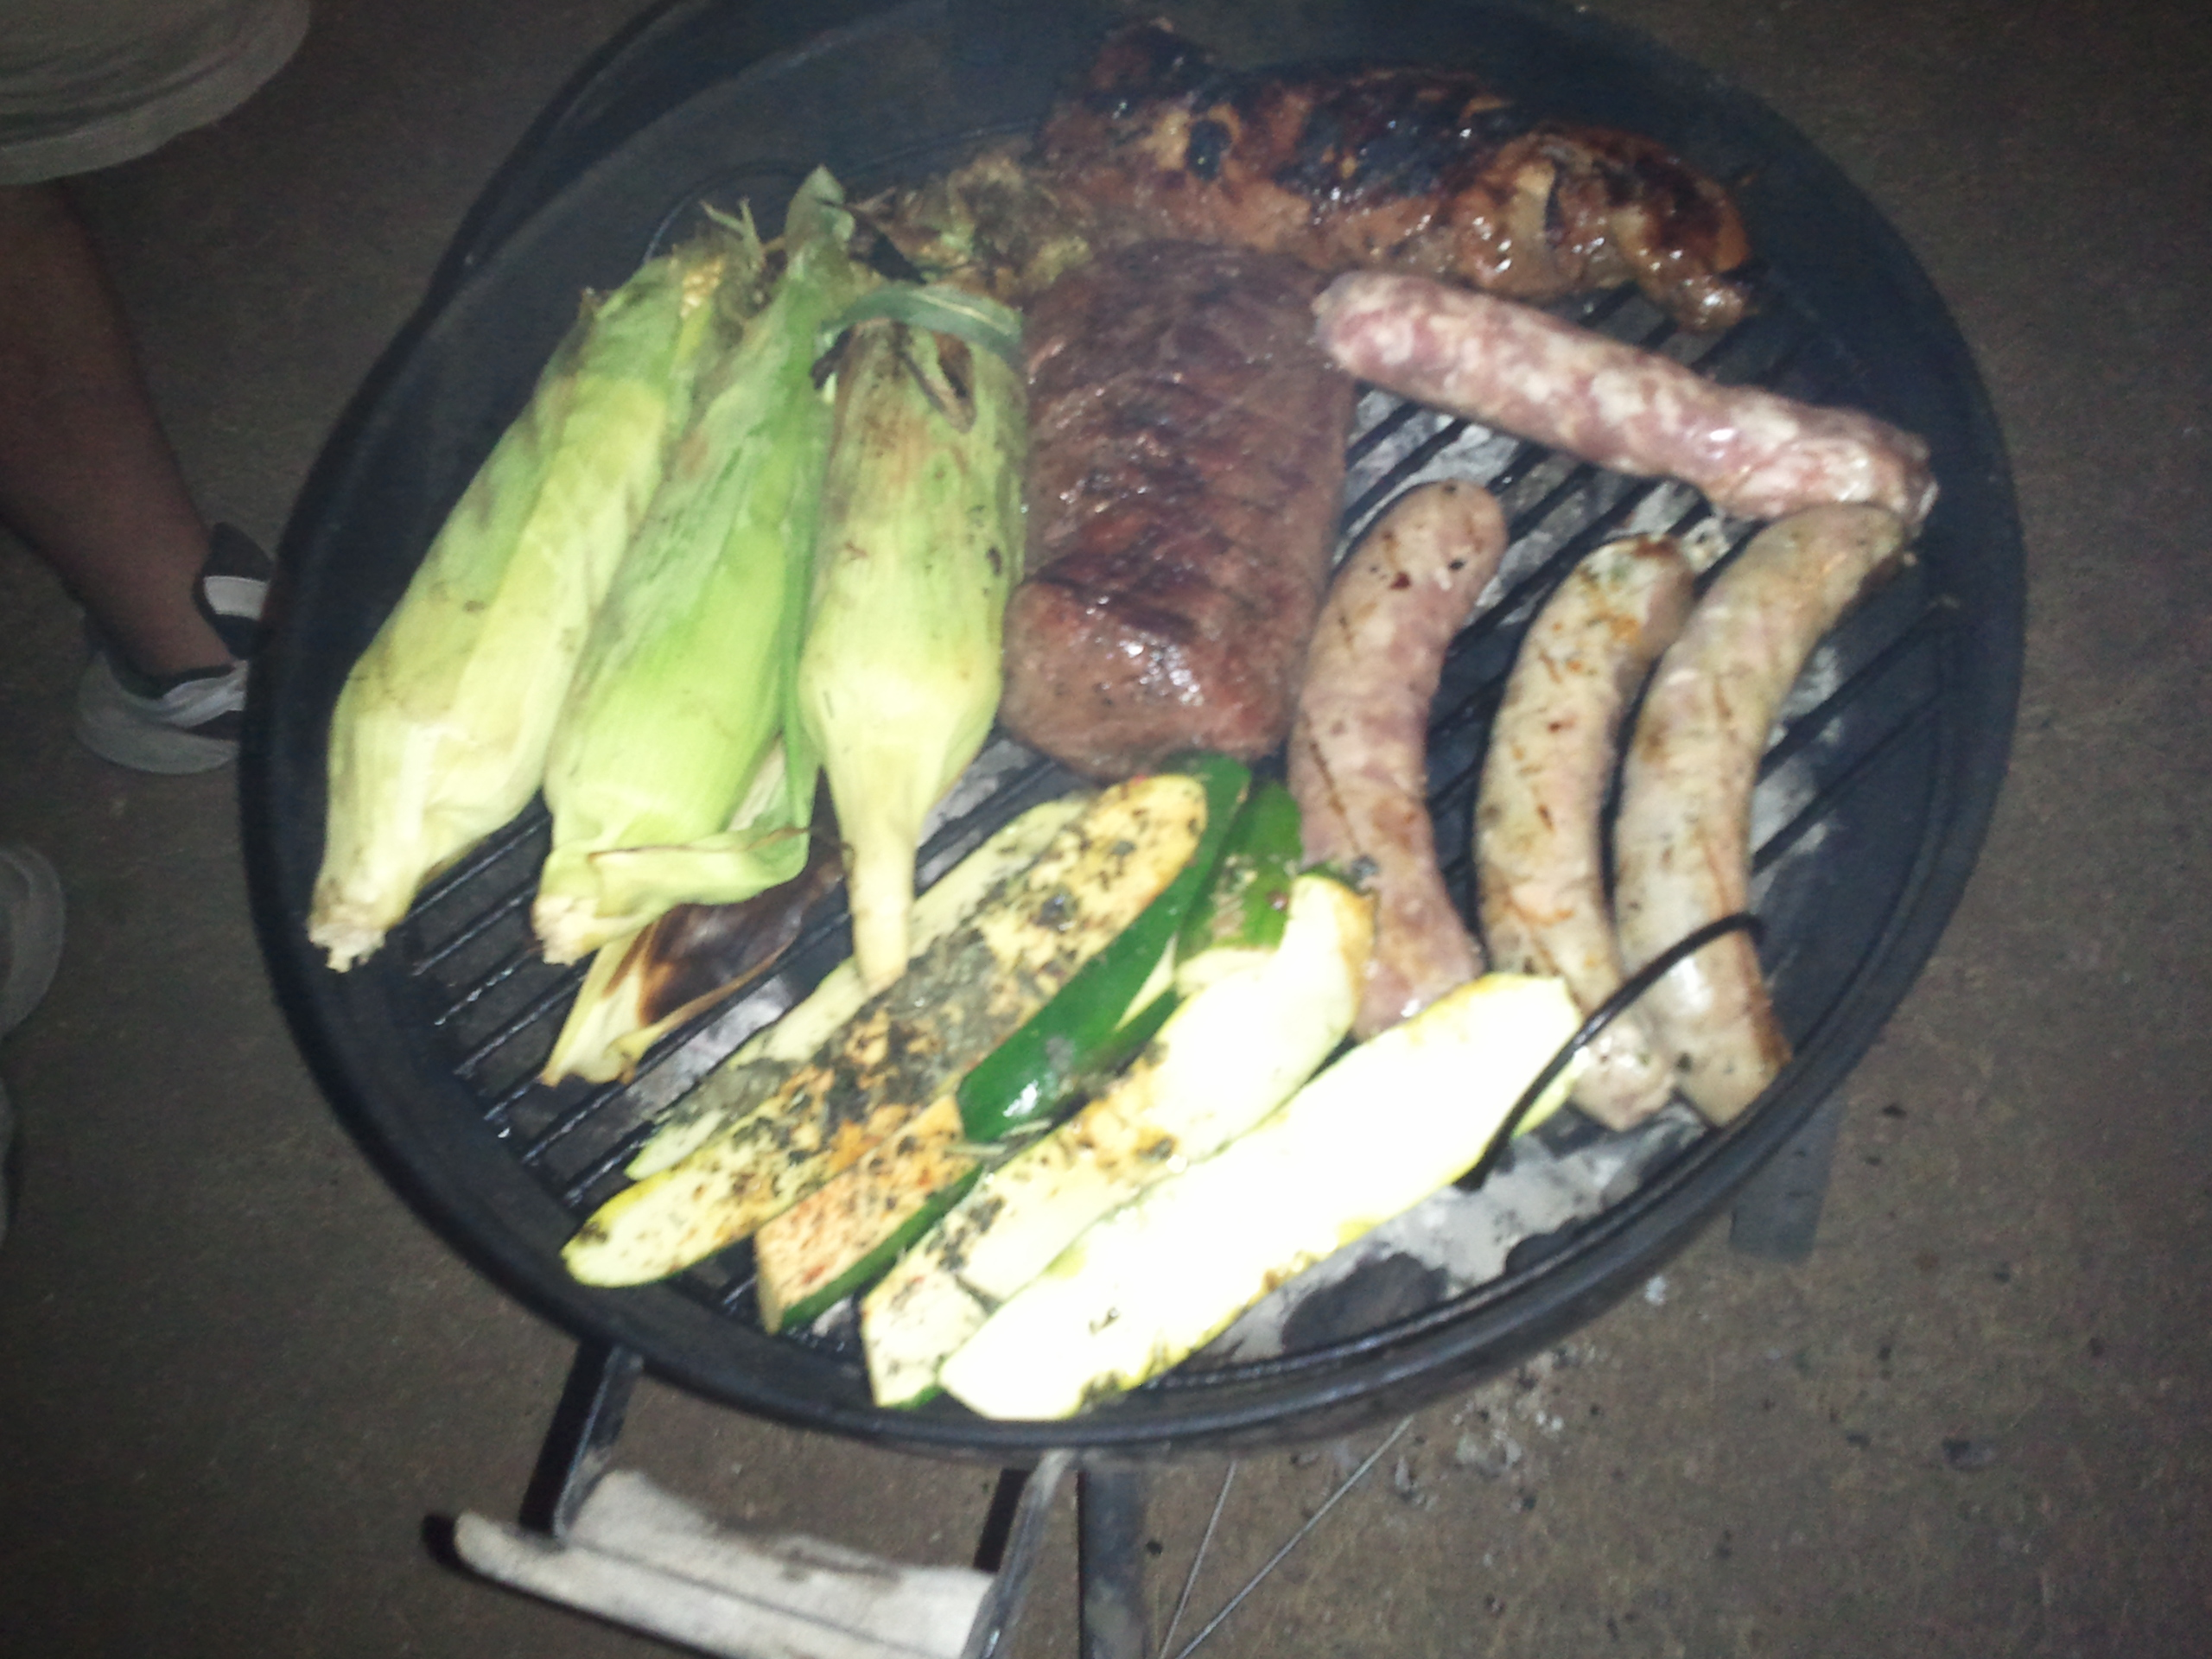 Brats and corn and all things meaty